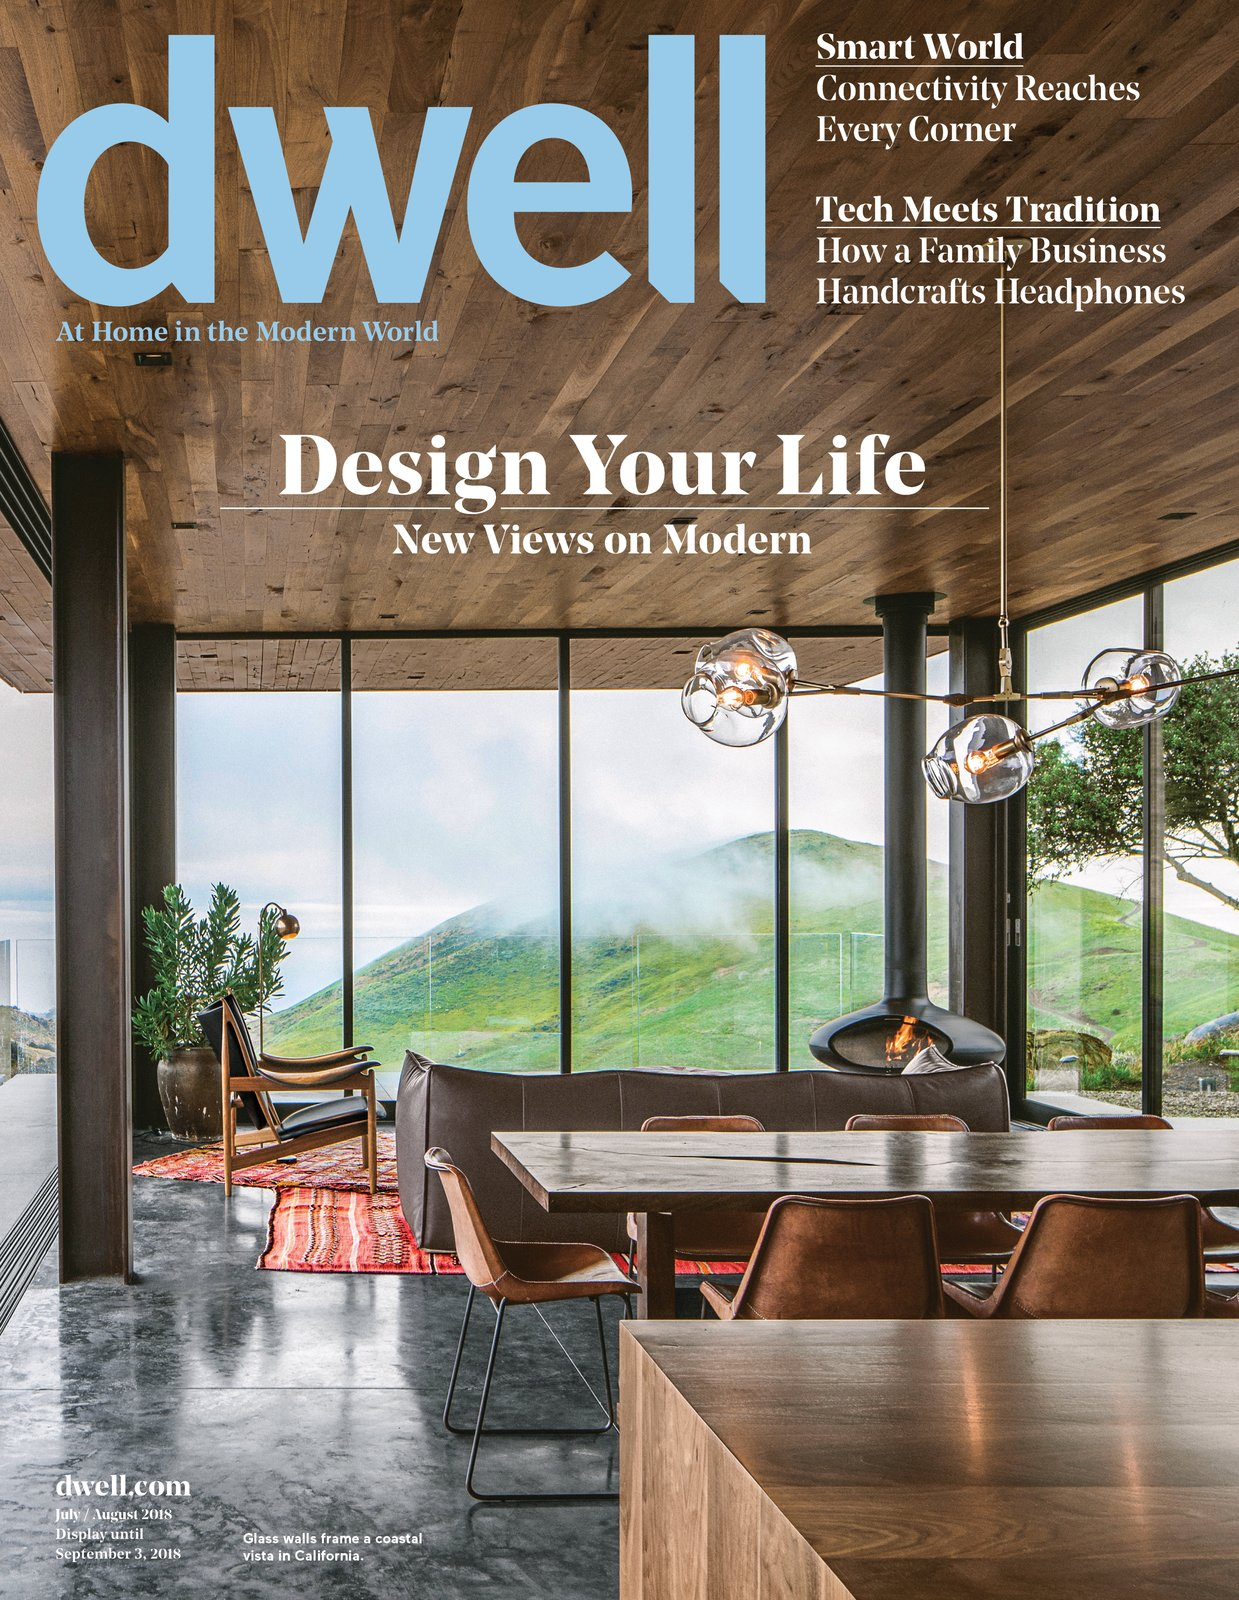 pick-up-the-julyaugust-issue-featuring-homes-from-new-zealands-south-island-to-reno-nevada-on-newsstands-july-10.jpg